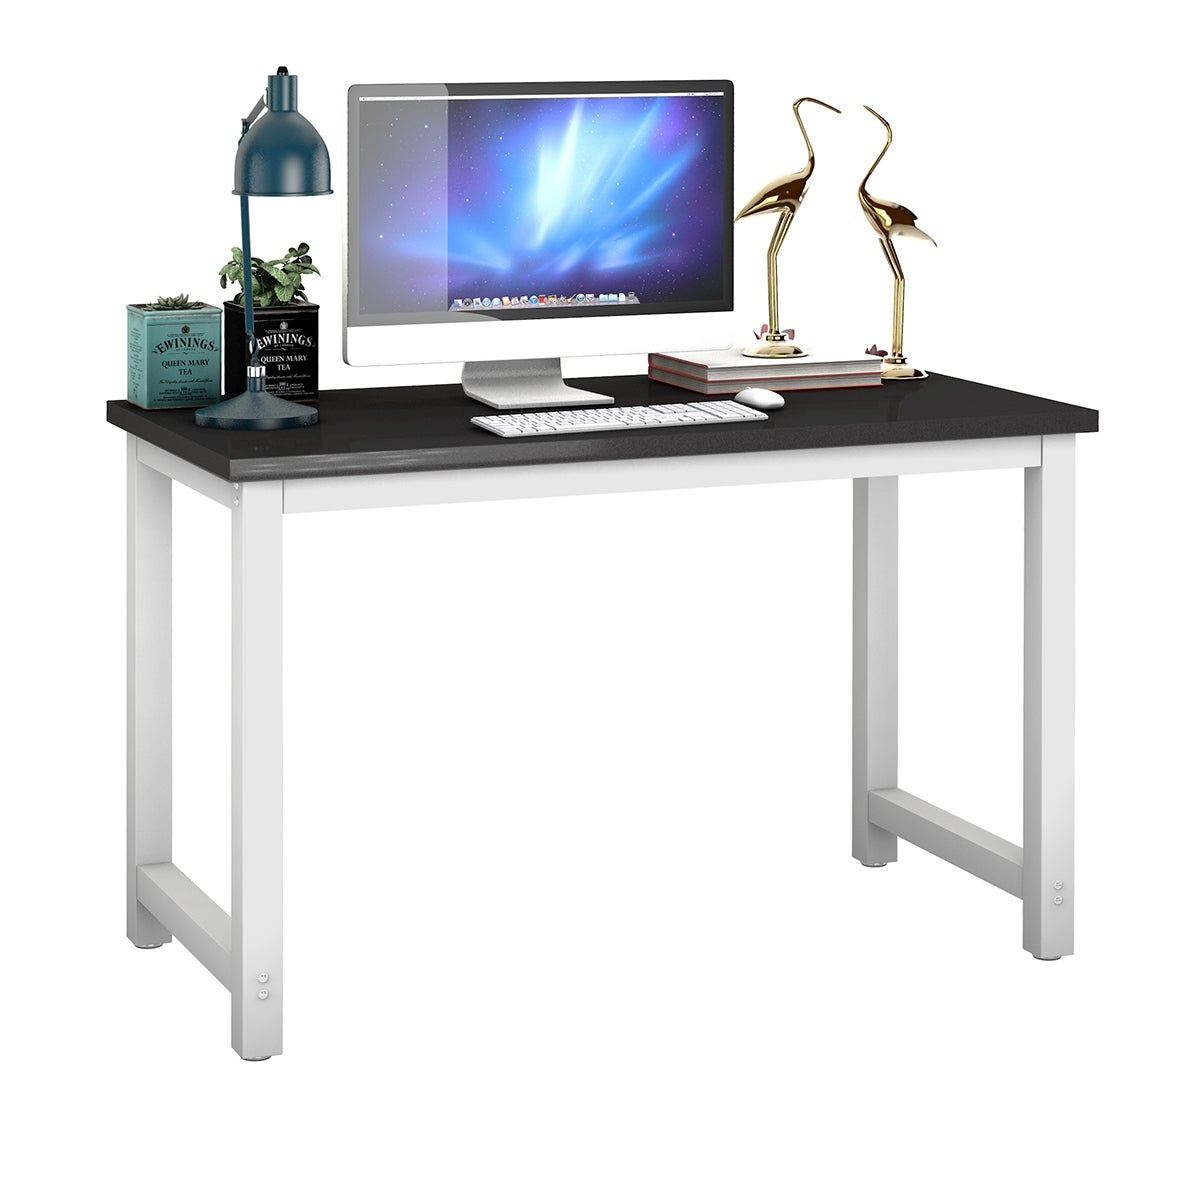 Computer Desk PC Laptop Table Study Workstation Student Home Office Furniture